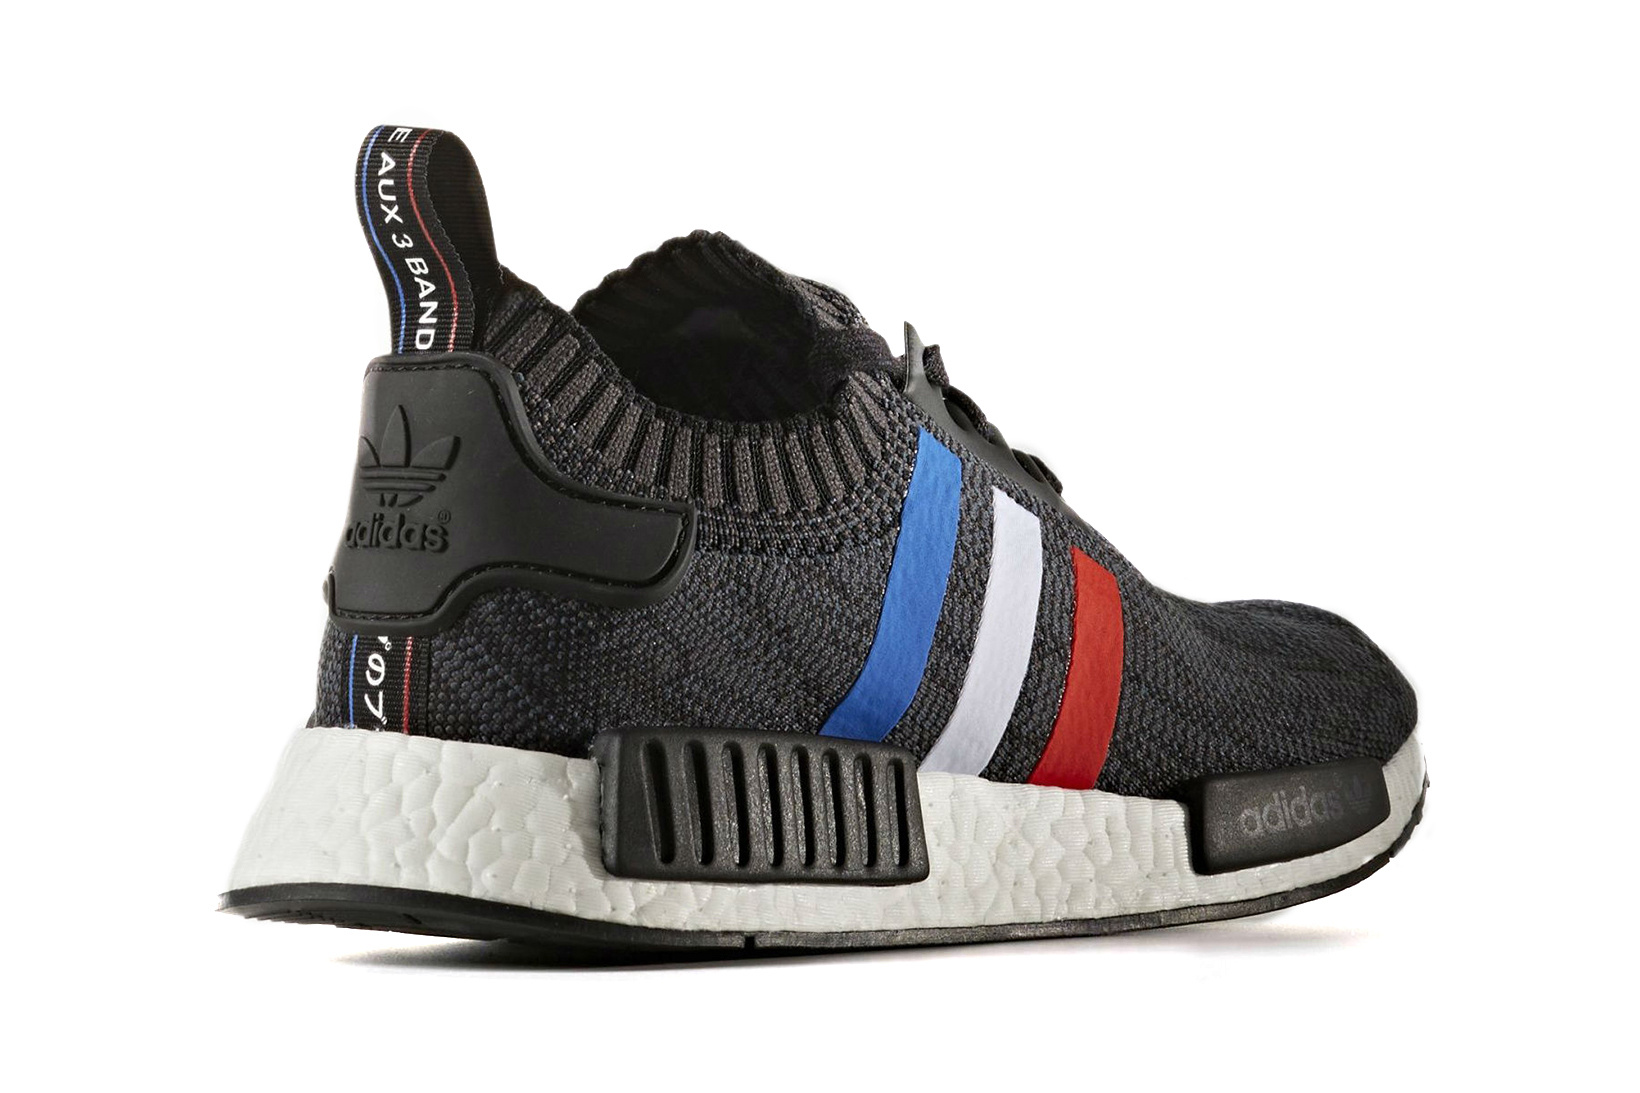 Adidas Nmd Quot Tricolor Quot For The 2016 Holidays Season Soleracks